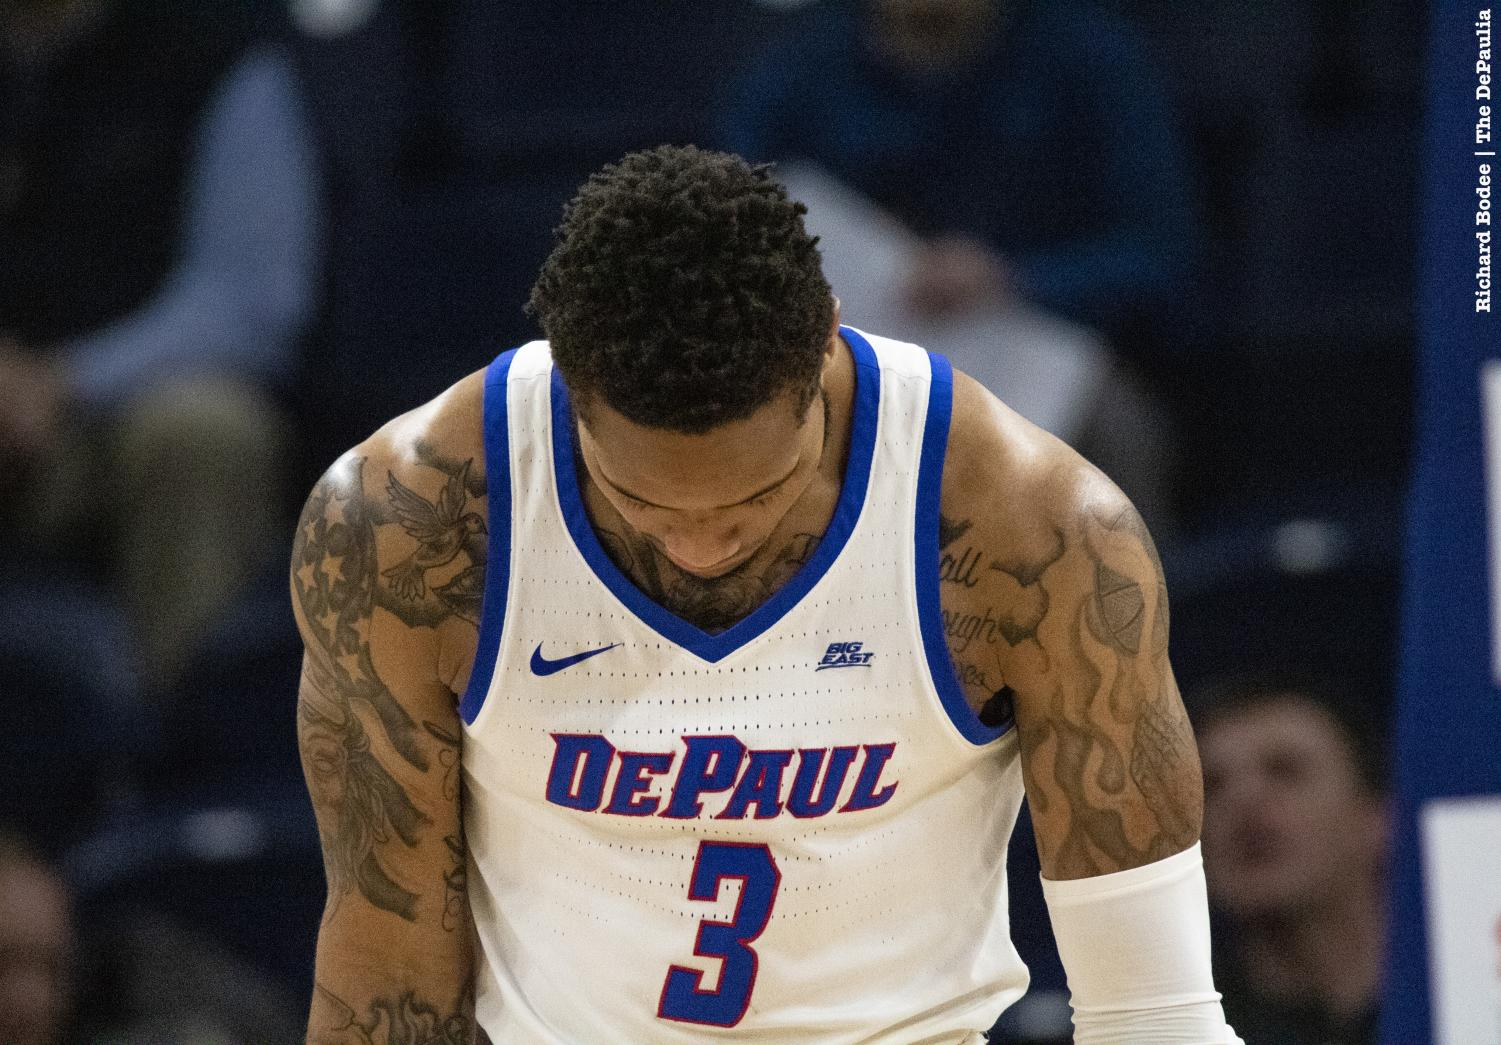 Sophomore+guard+Devin+Gage+hangs+his+head+during+the+second+half+of+DePaul%27s+loss+to+Butler+Wednesday+night+at+Wintrust+Arena.+Richard+Bodee+%7C+The+DePaulia